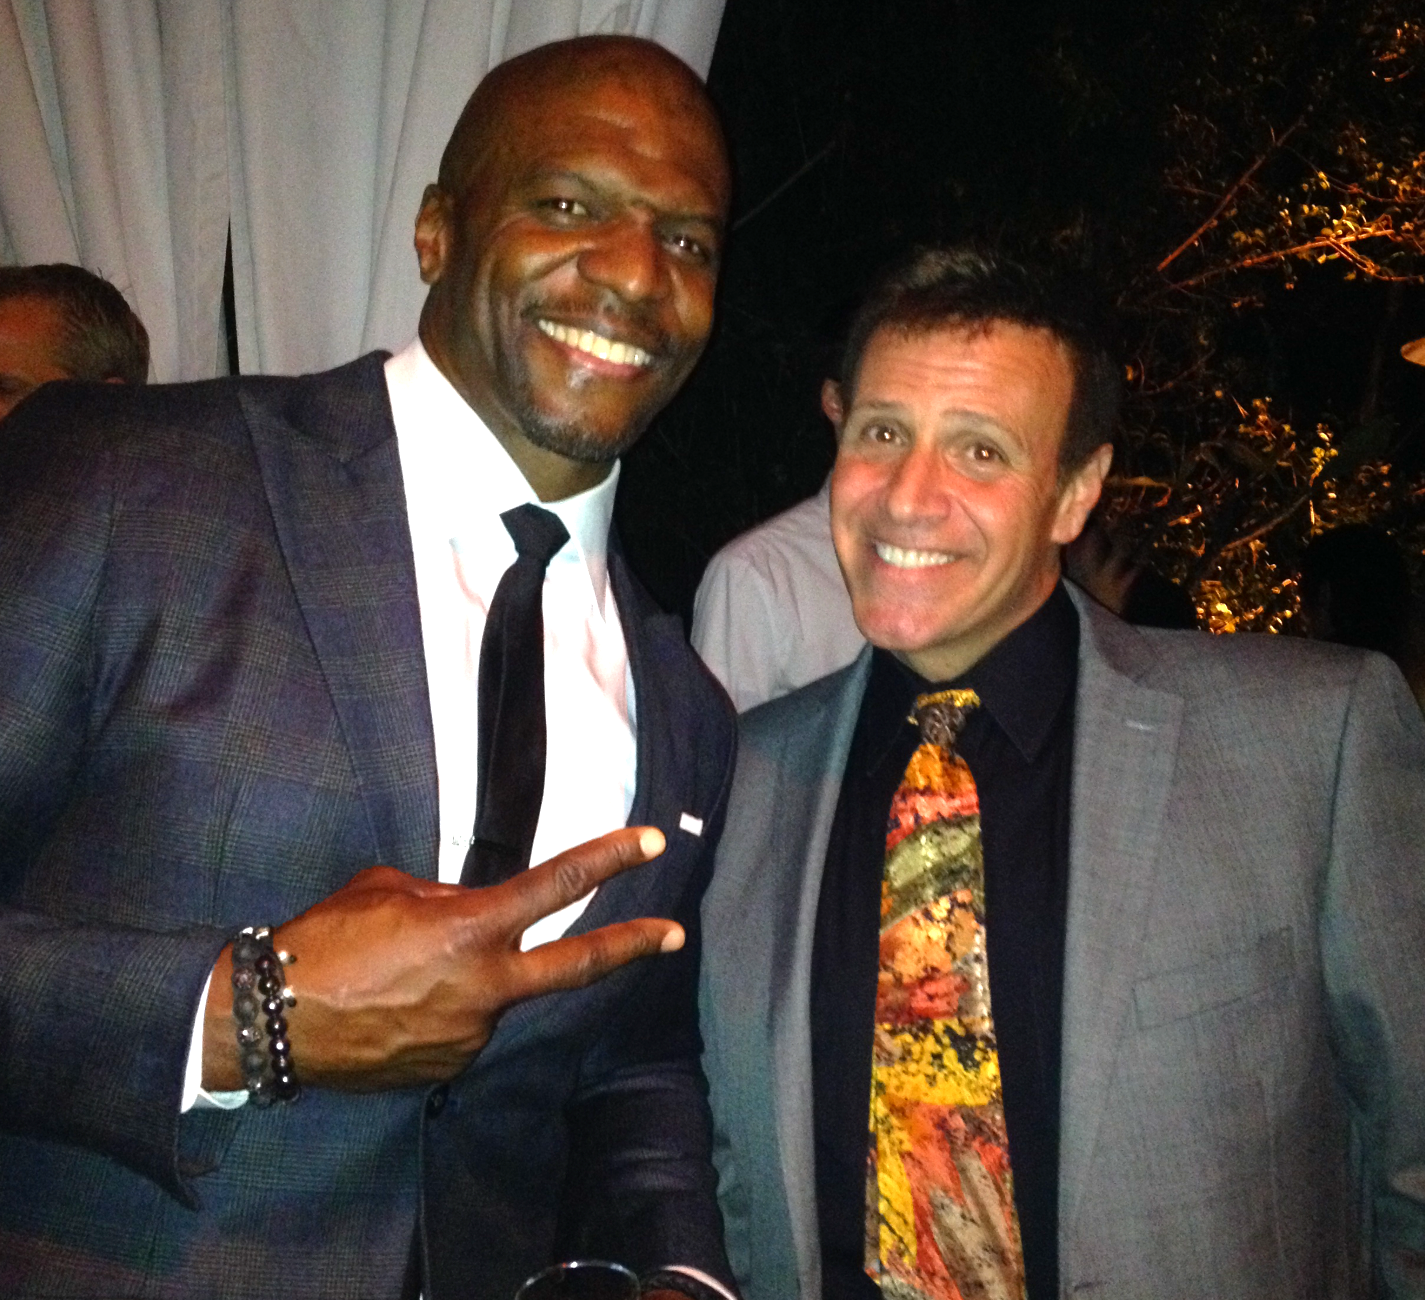 Stephen with Terry Crews